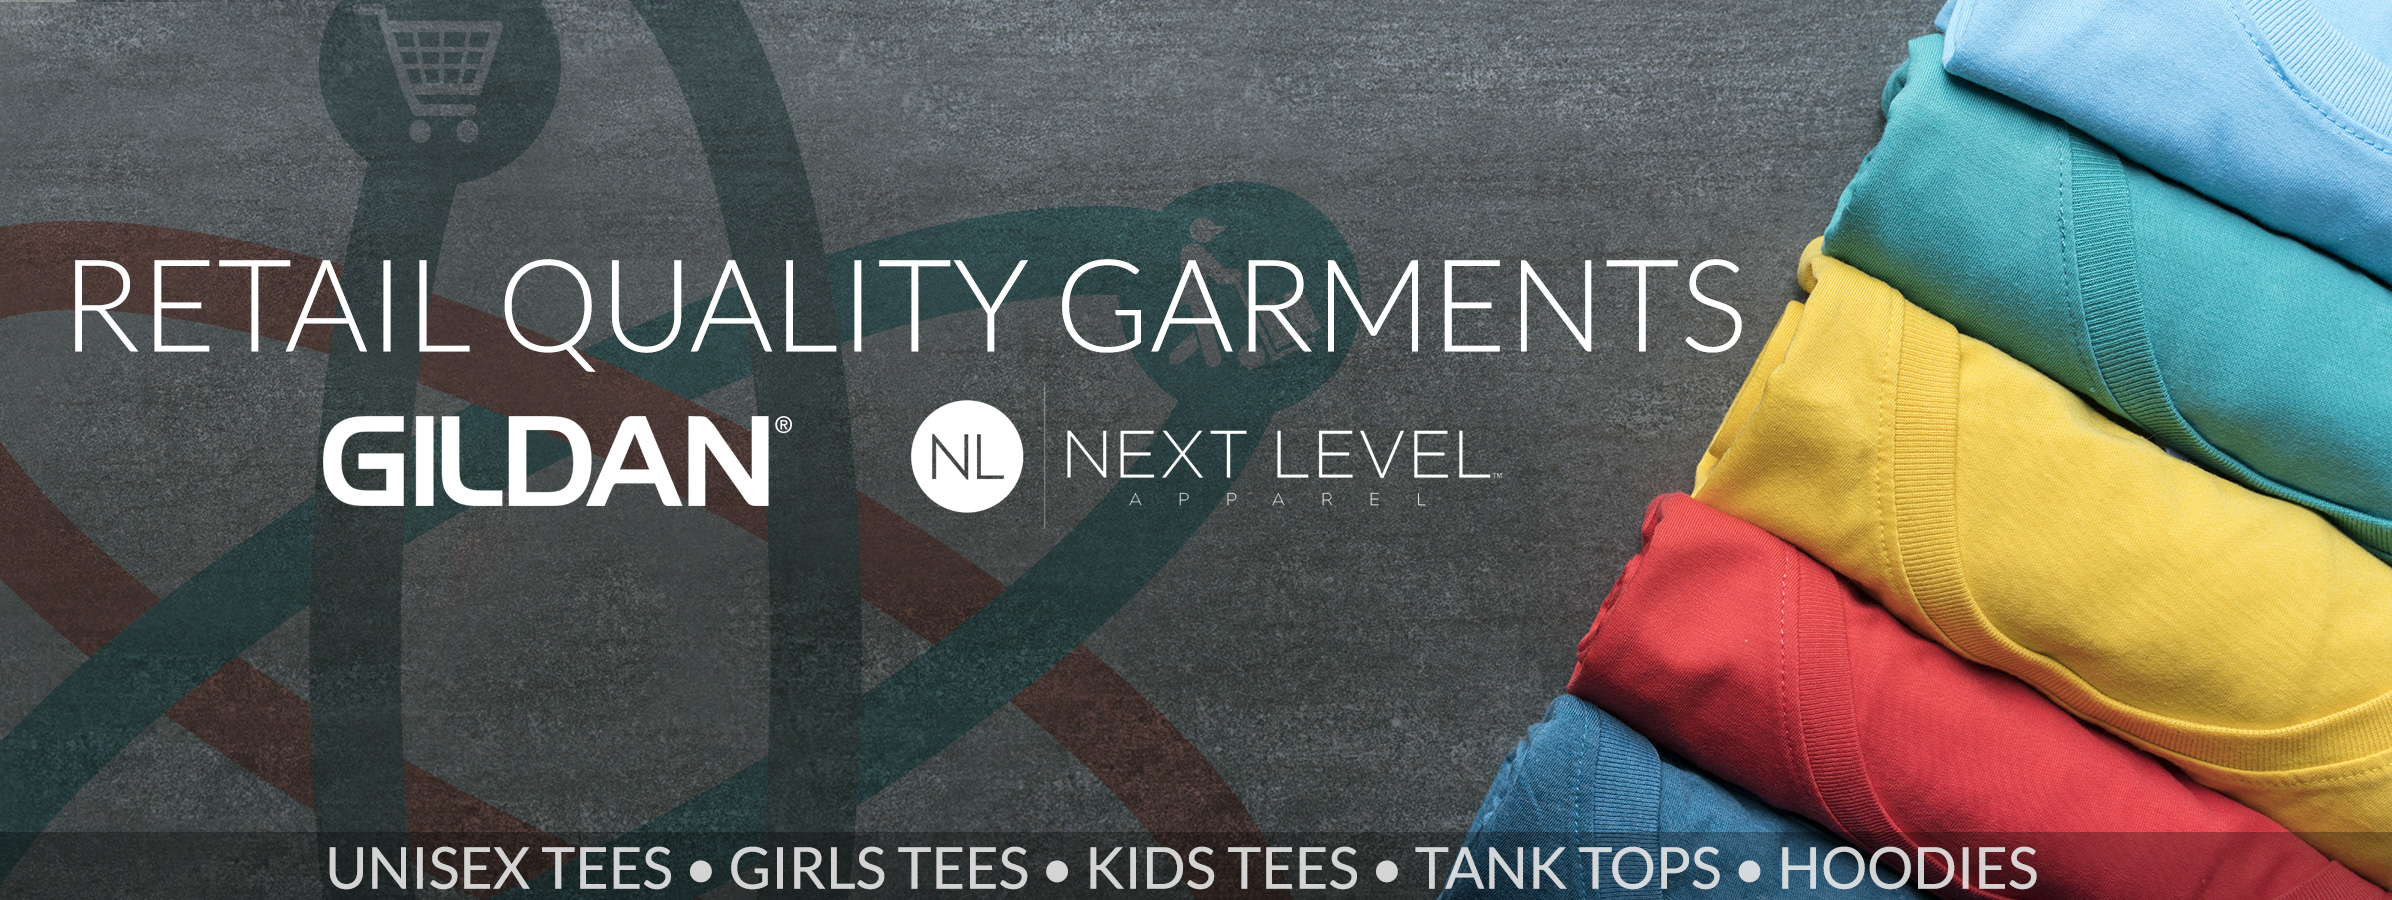 Retail Quality Garments from Gildan and Next Level